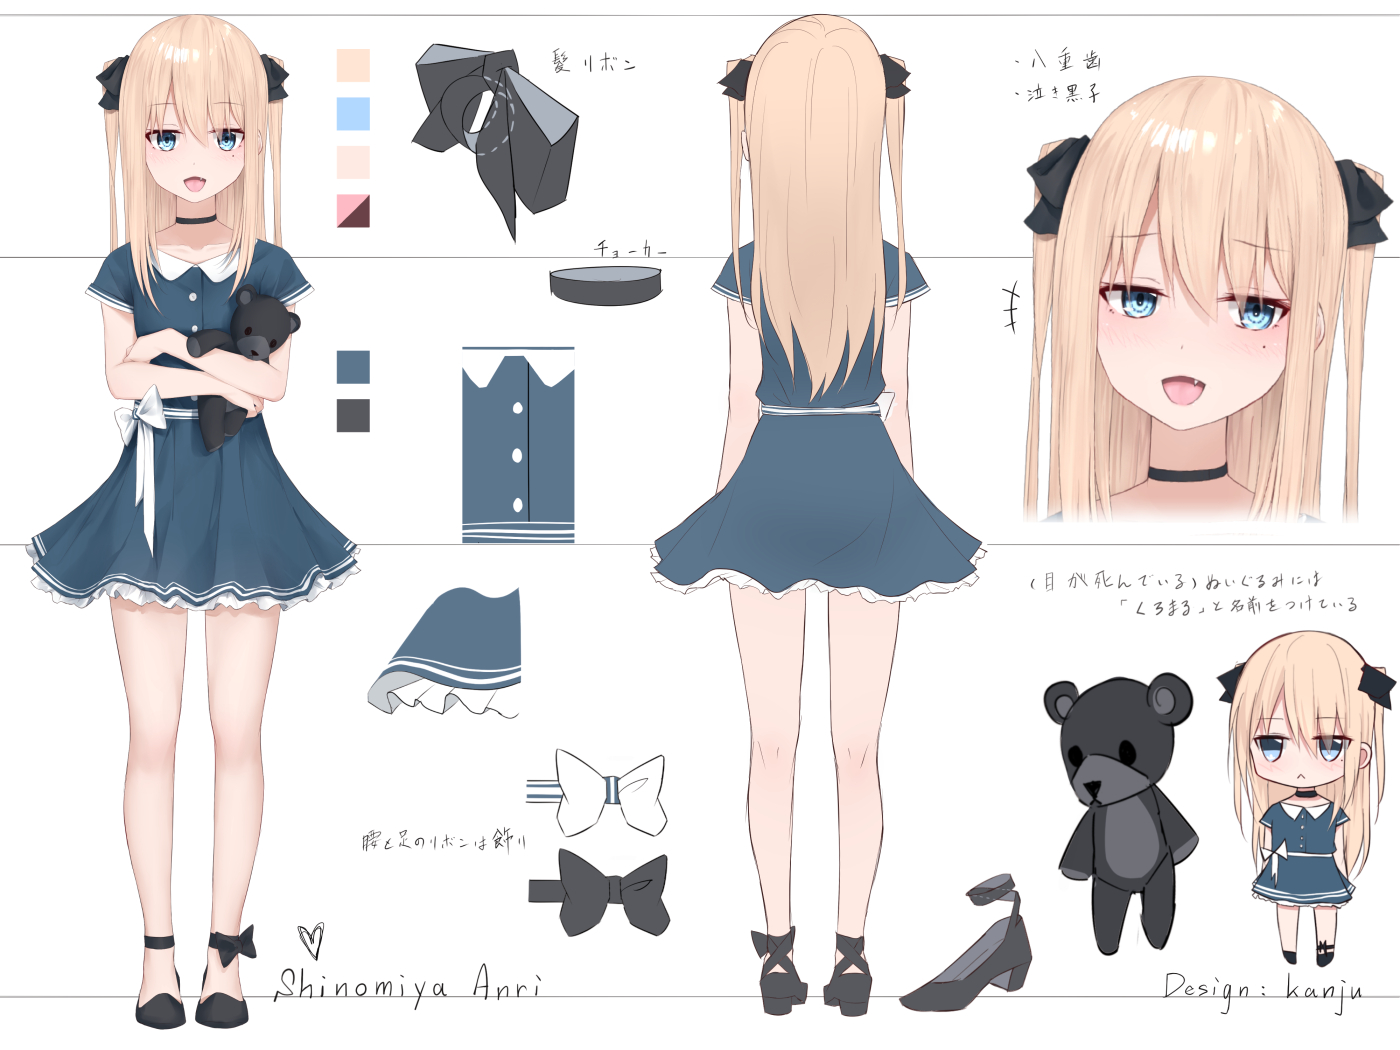 aqua_eyes blonde_hair bow choker fang kanju long_hair original teddy_bear translation_request twintails